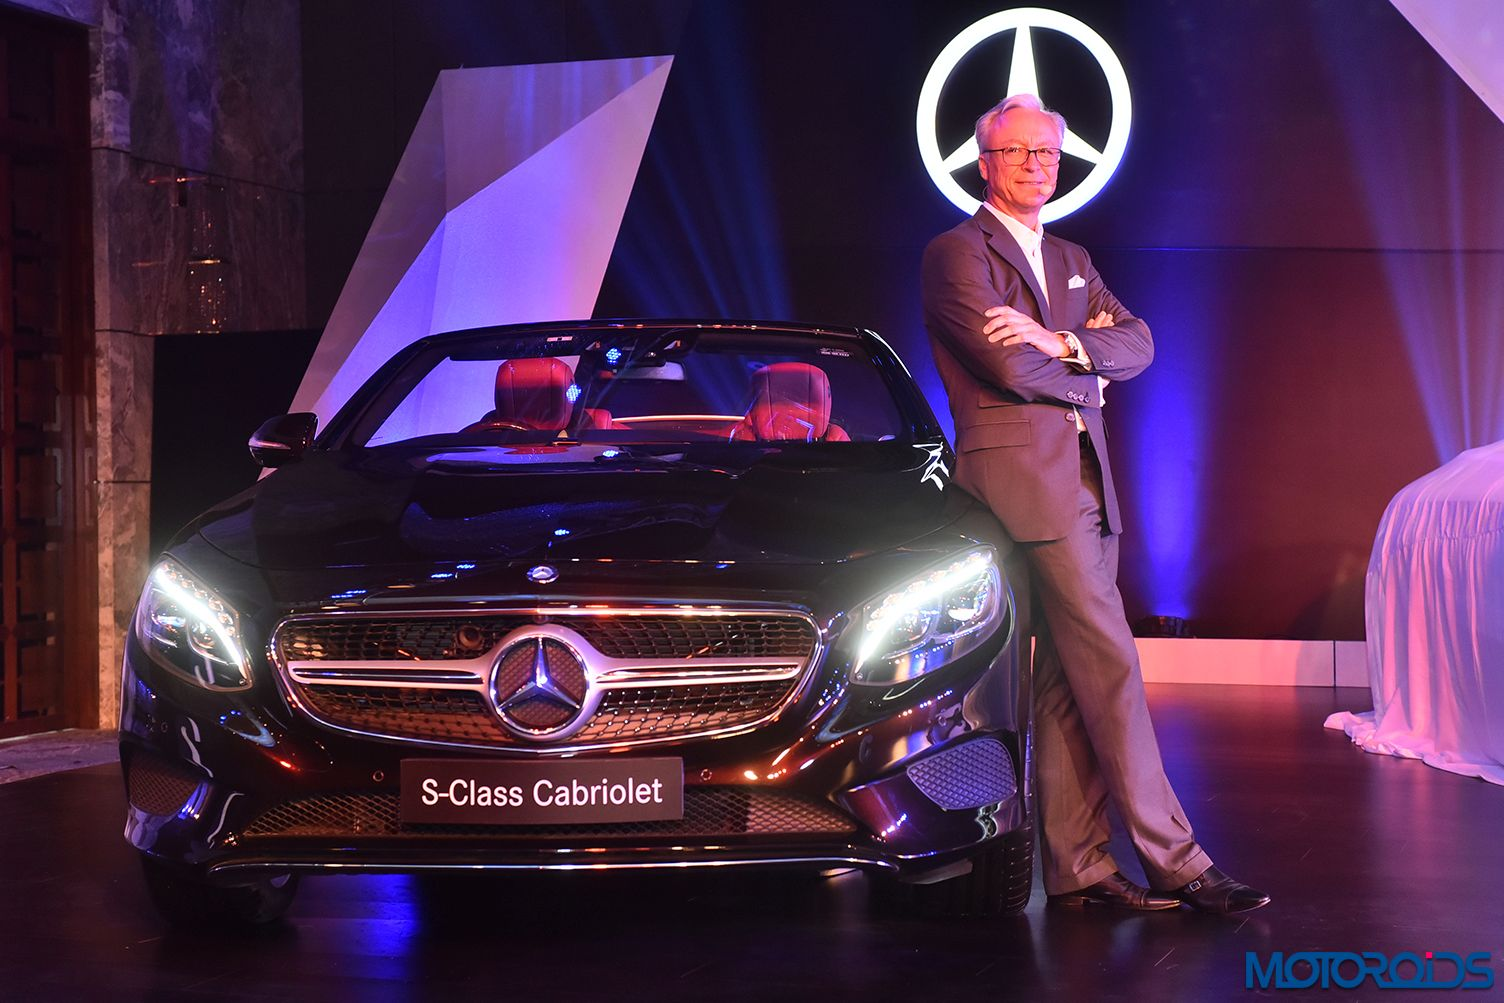 mercedes-benz-c-class-cabriolet-and-s-class-cabriolet-launch-3